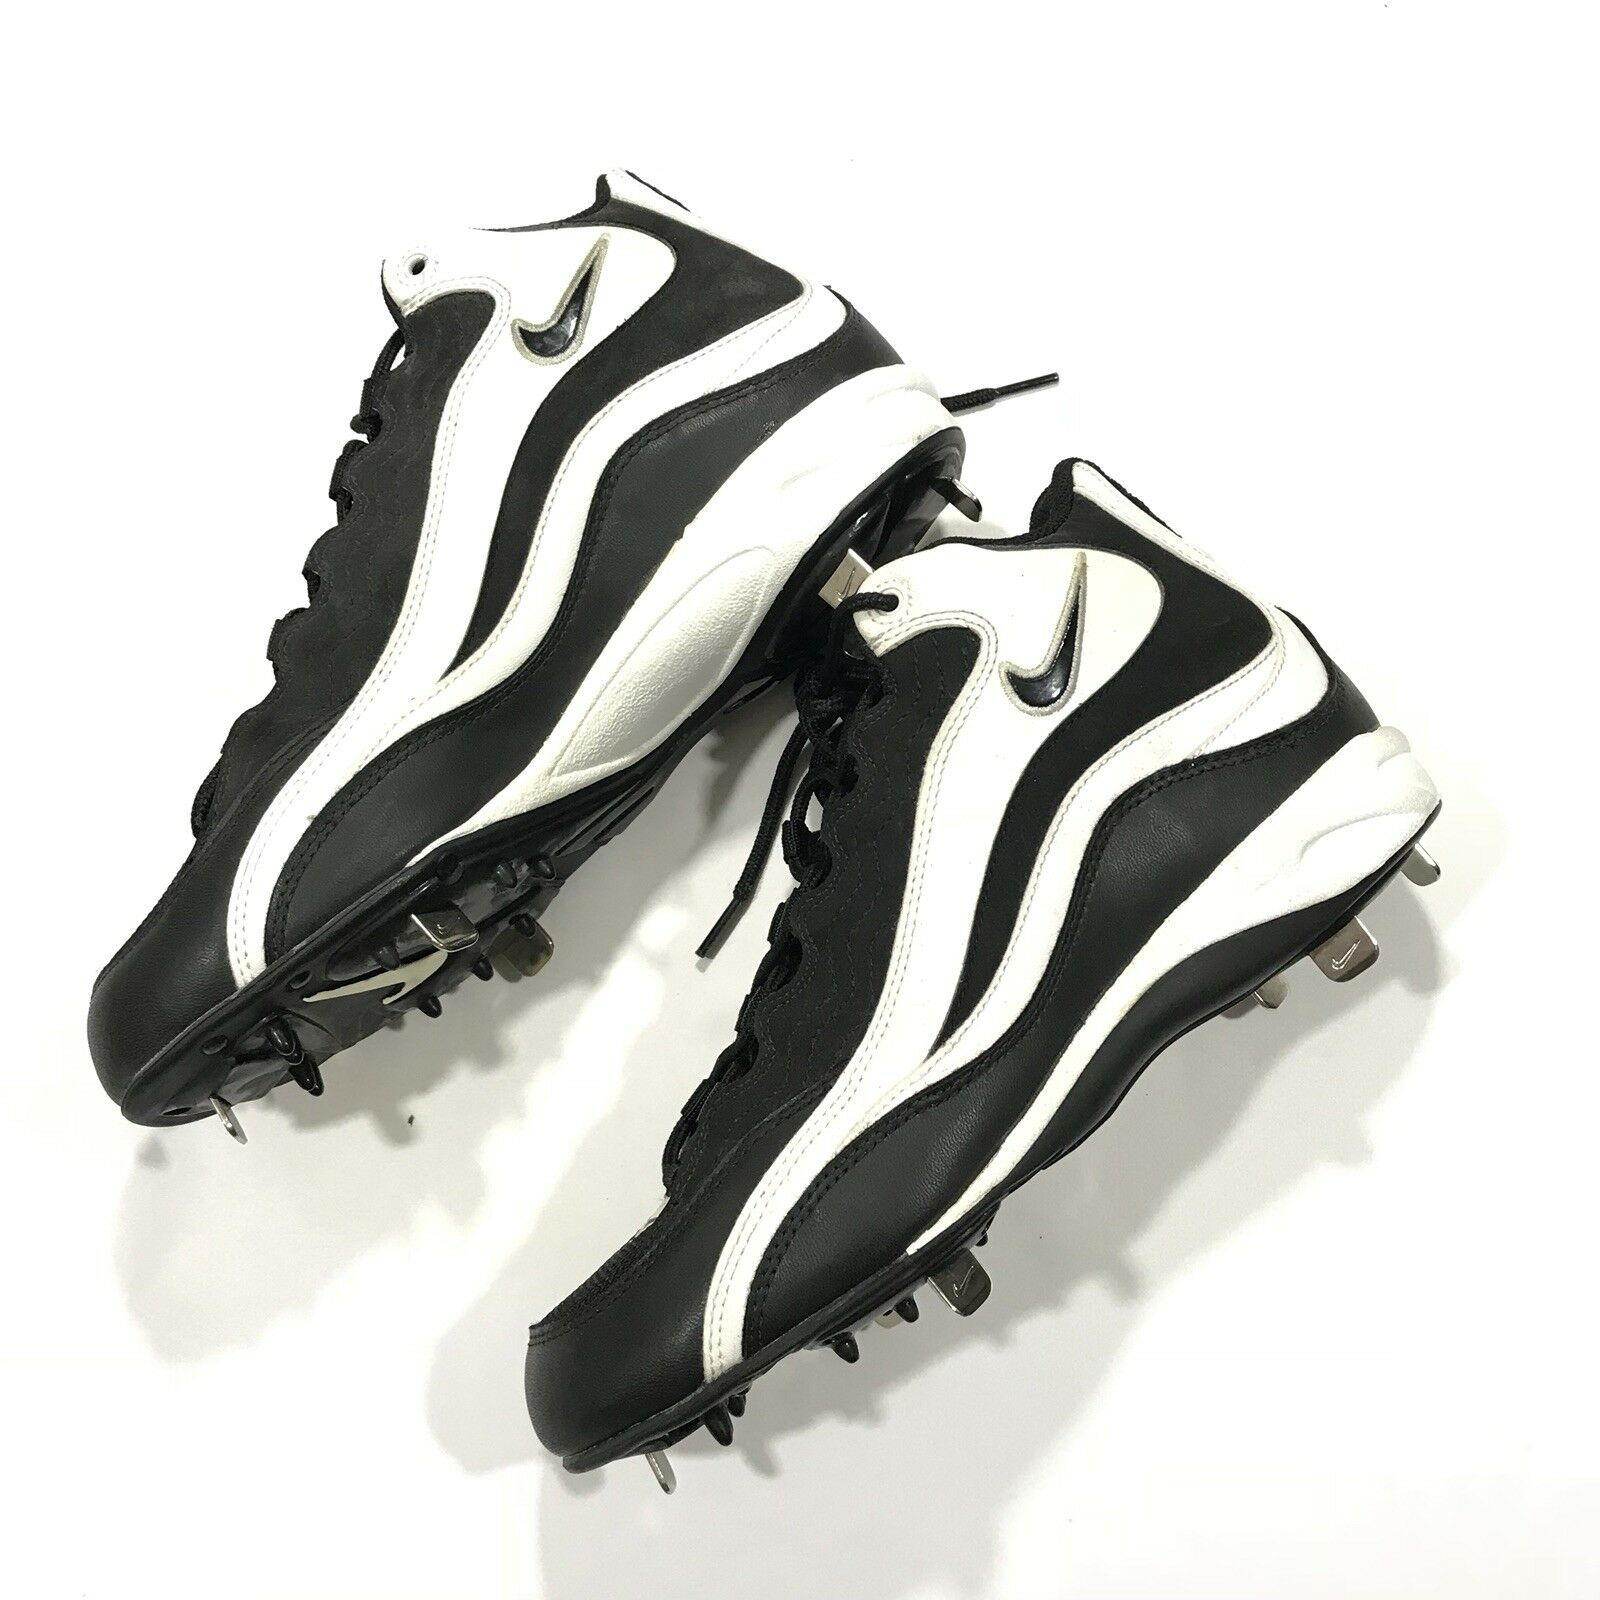 Vintage 90s Nike Baseball Cleats Size 9 Rare Black White Metal Spikes